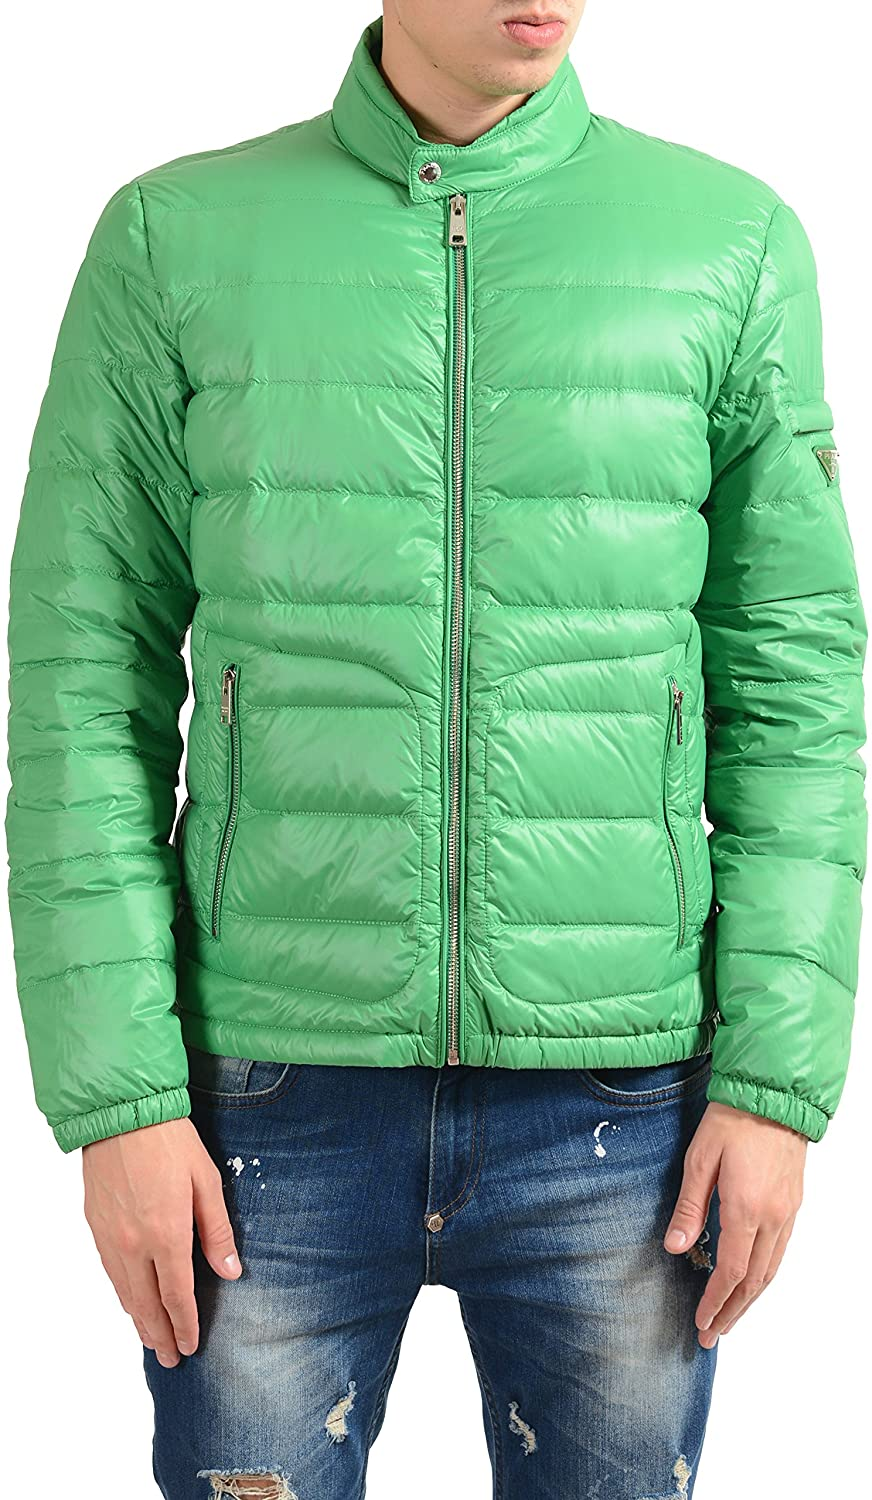 Prada Men's Green Full Zip Down Light Parka Jacket US L IT 52